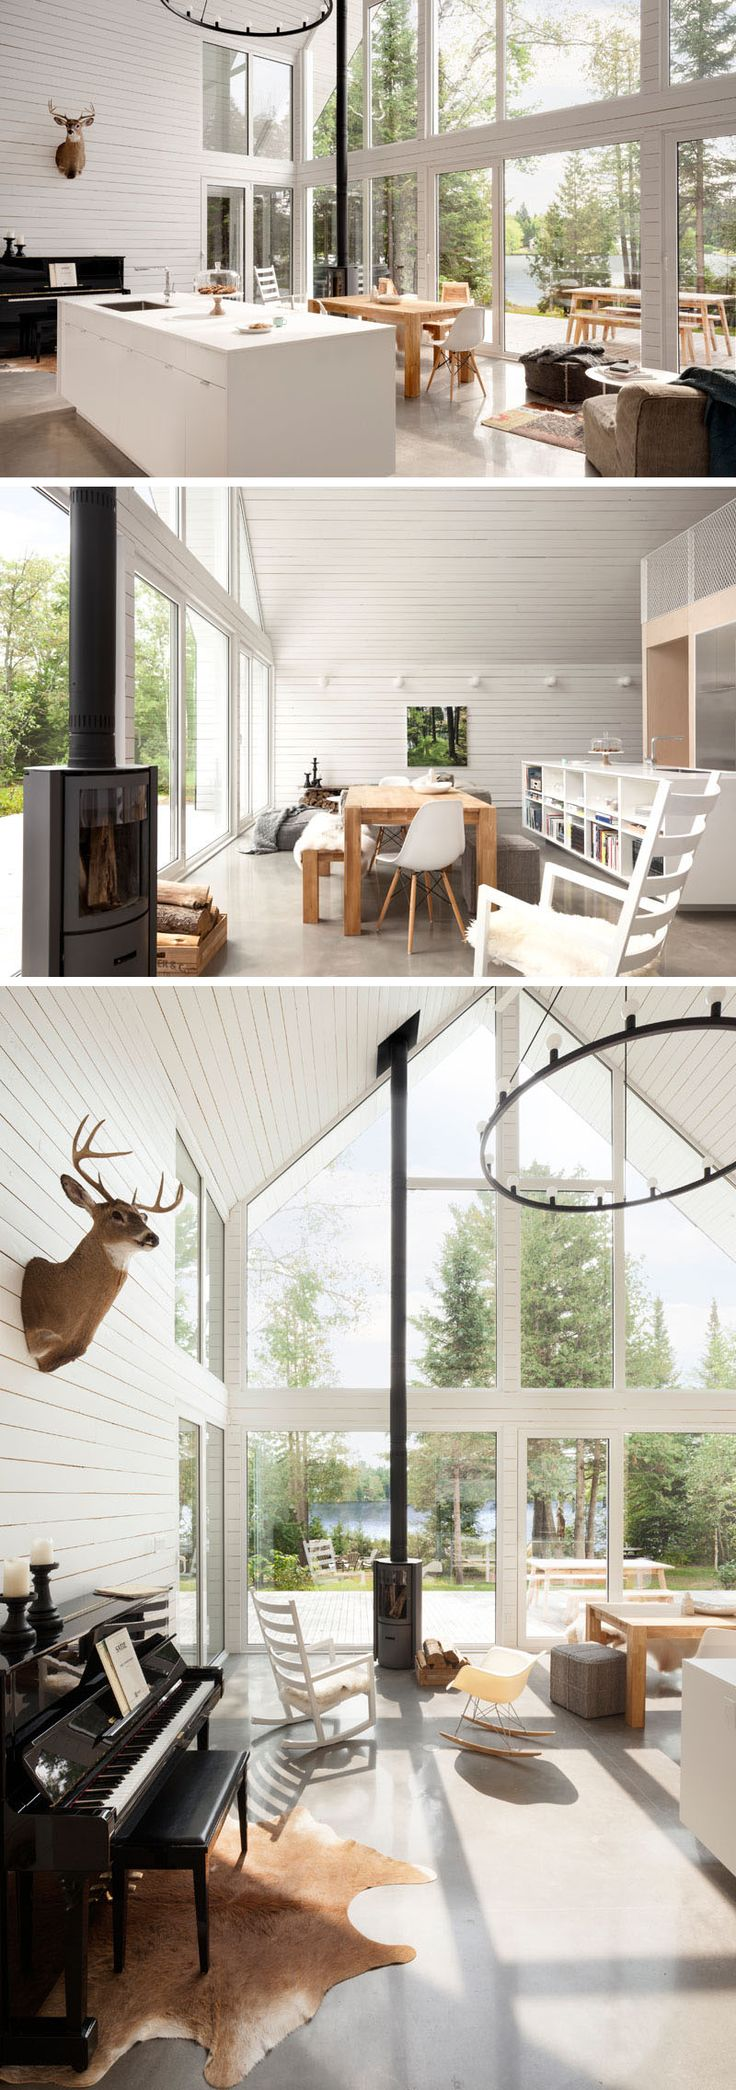 Polished concrete floors and white have been used throughout this lakeside chalet, like in the main living, dining and kitchen area.